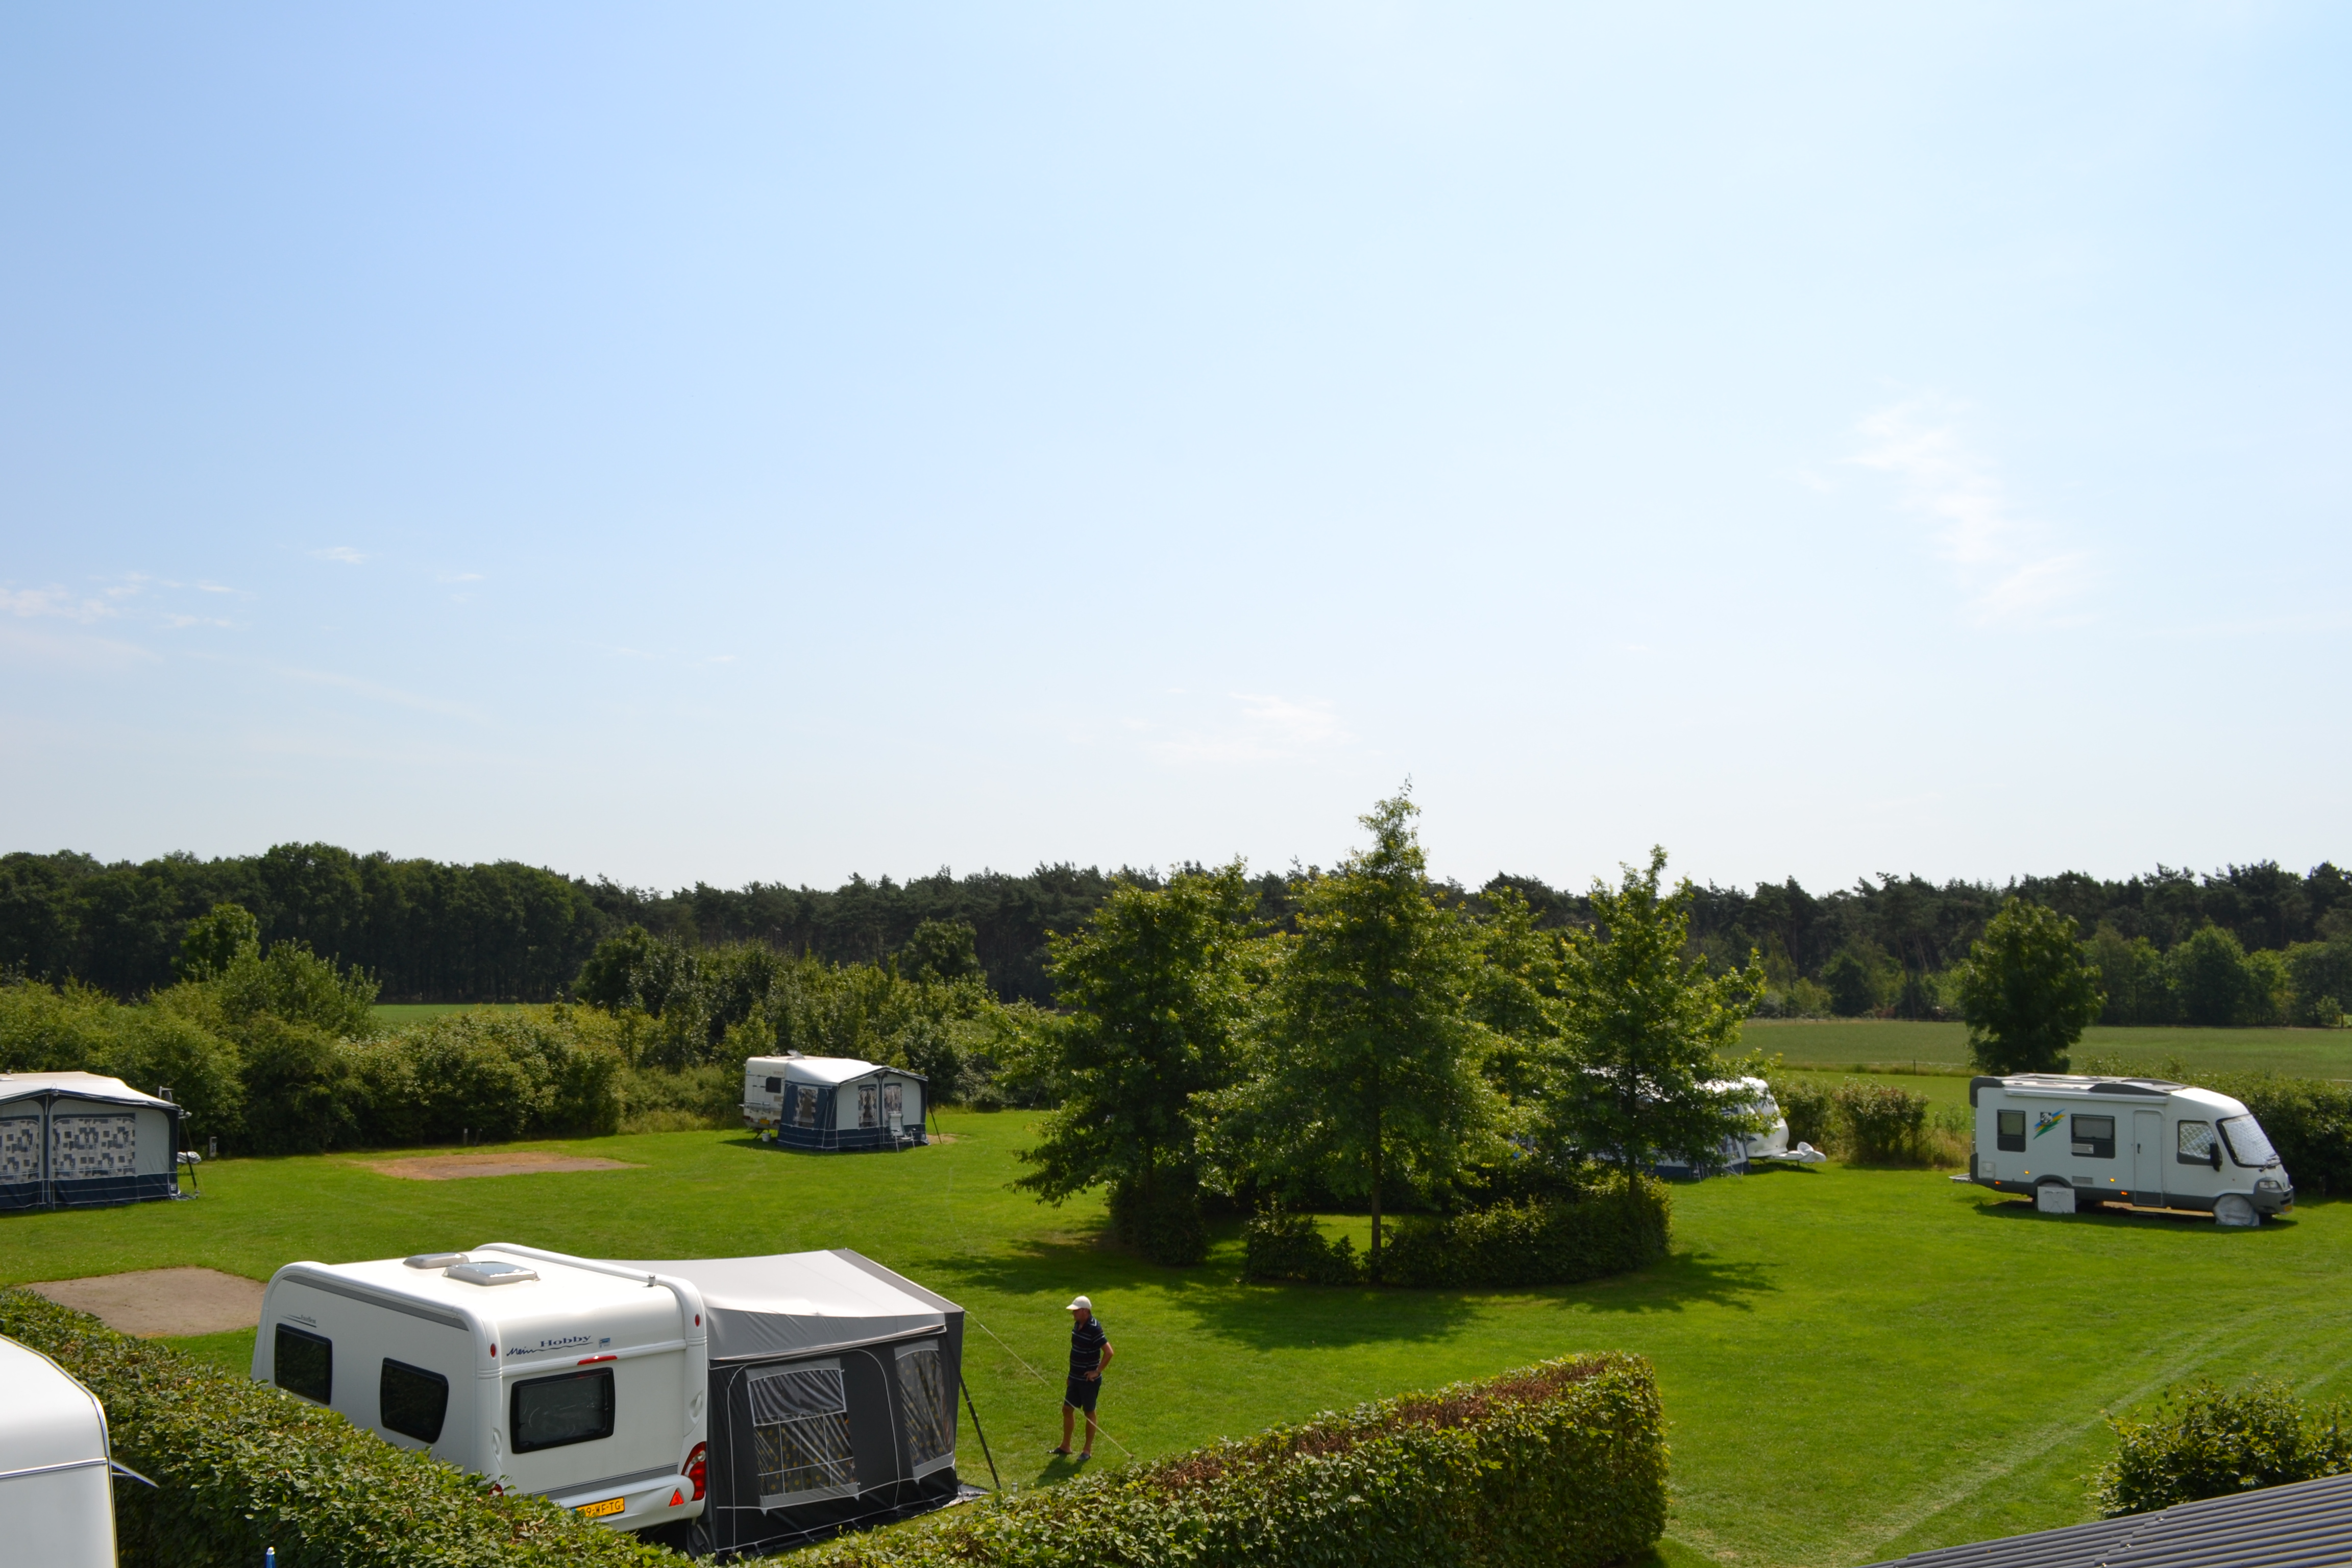 Camping Riethoven